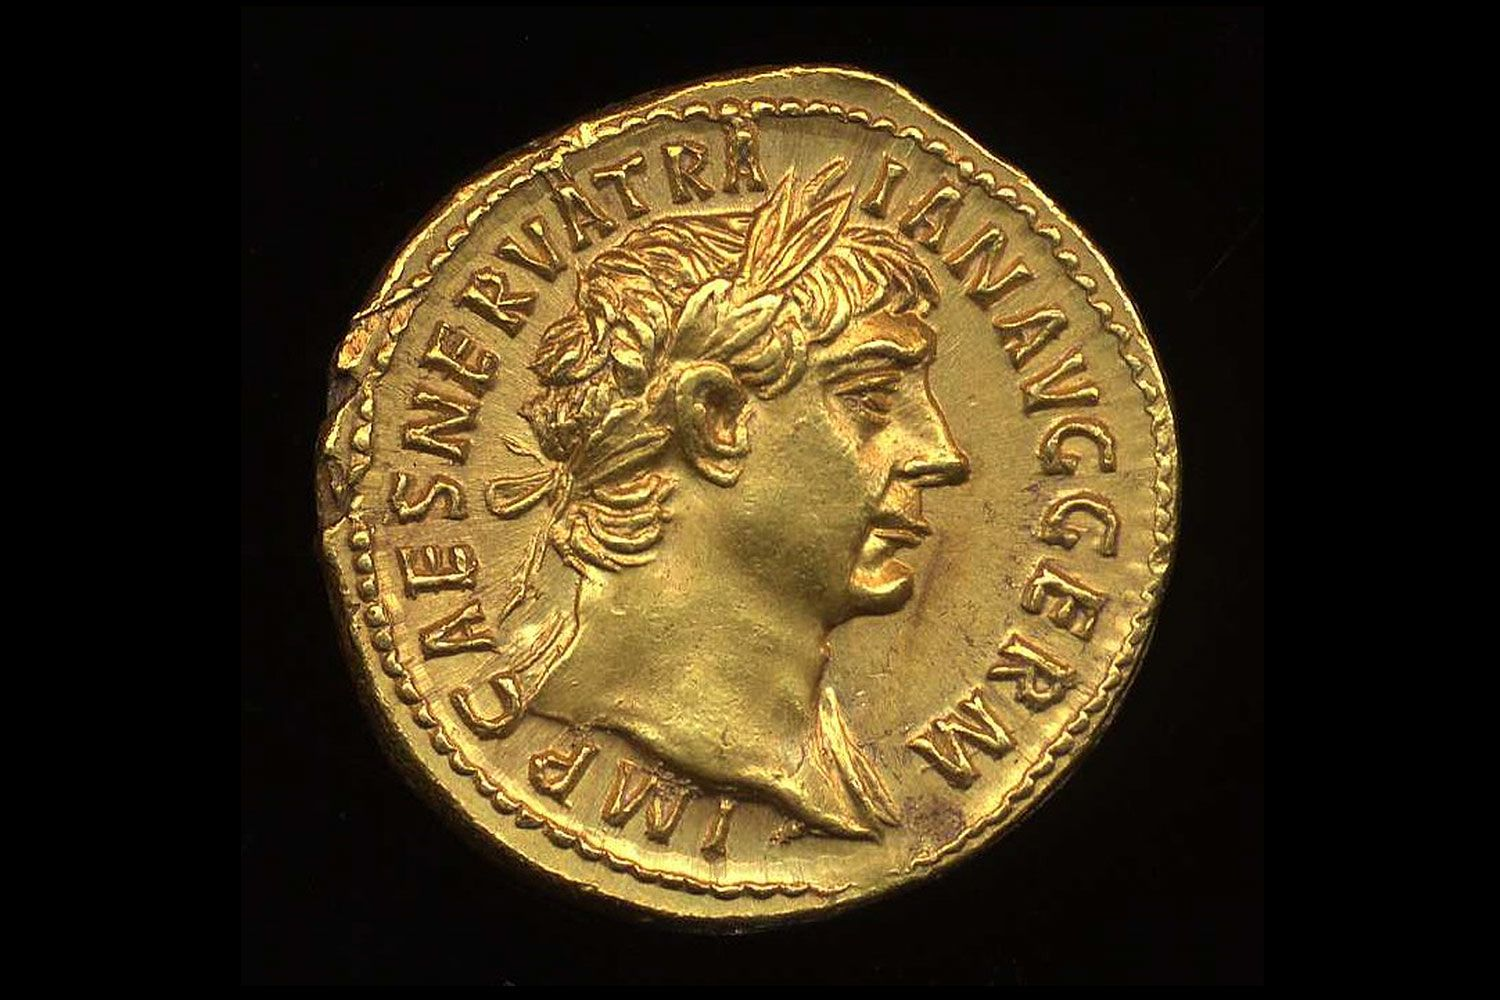 Rare Roman coin from the reign of Trajan